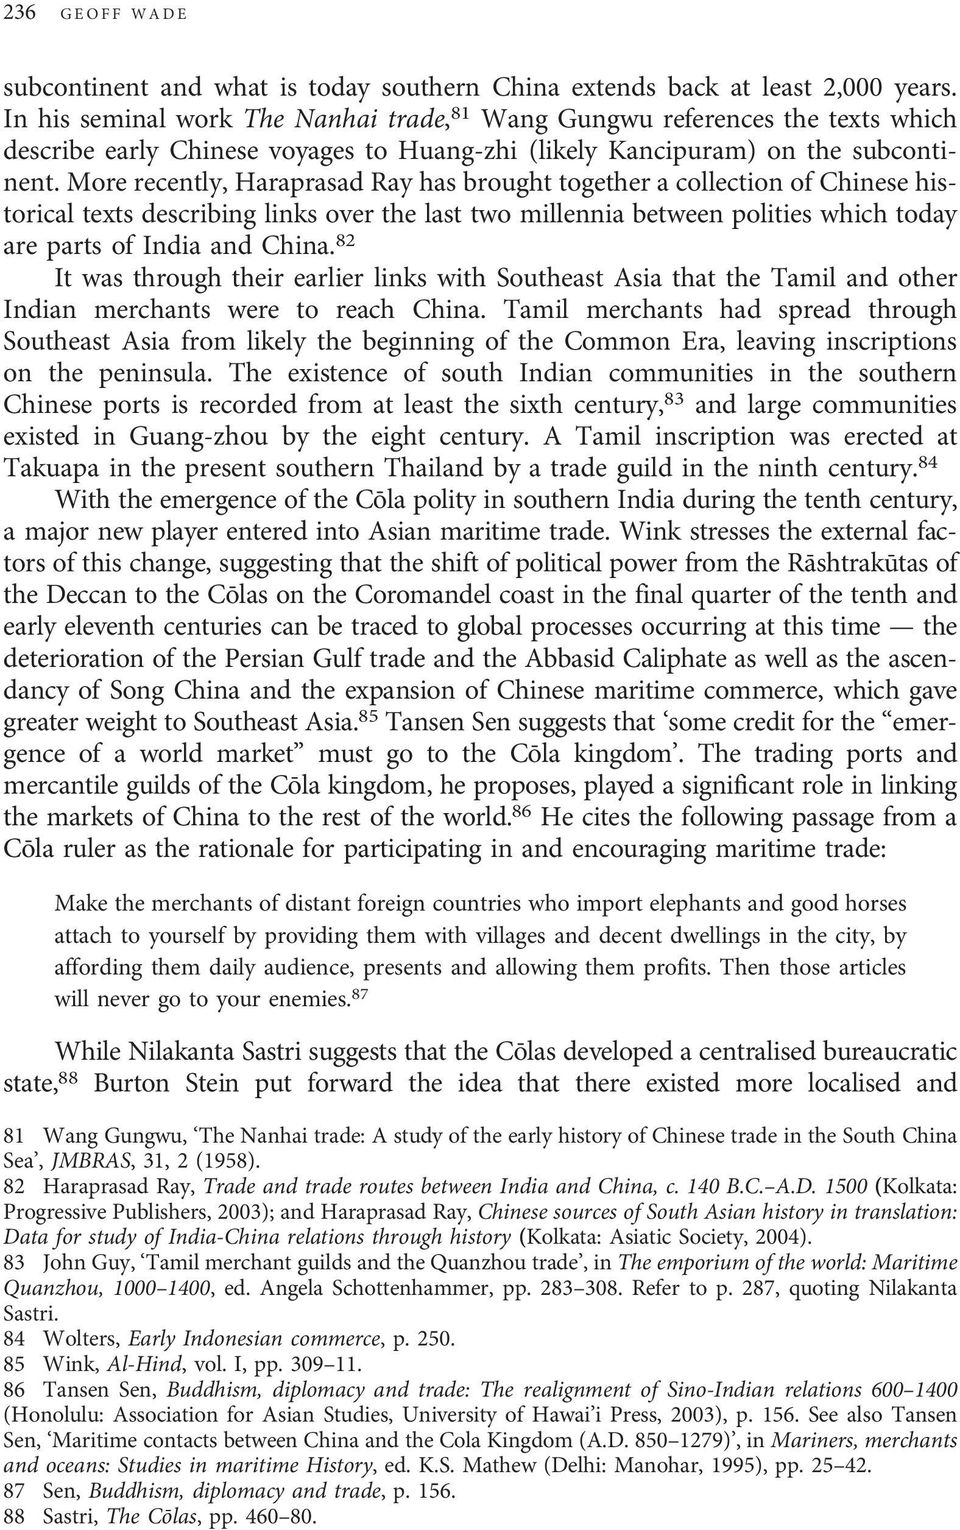 More recently, Haraprasad Ray has brought together a collection of Chinese historical texts describing links over the last two millennia between polities which today are parts of India and China.